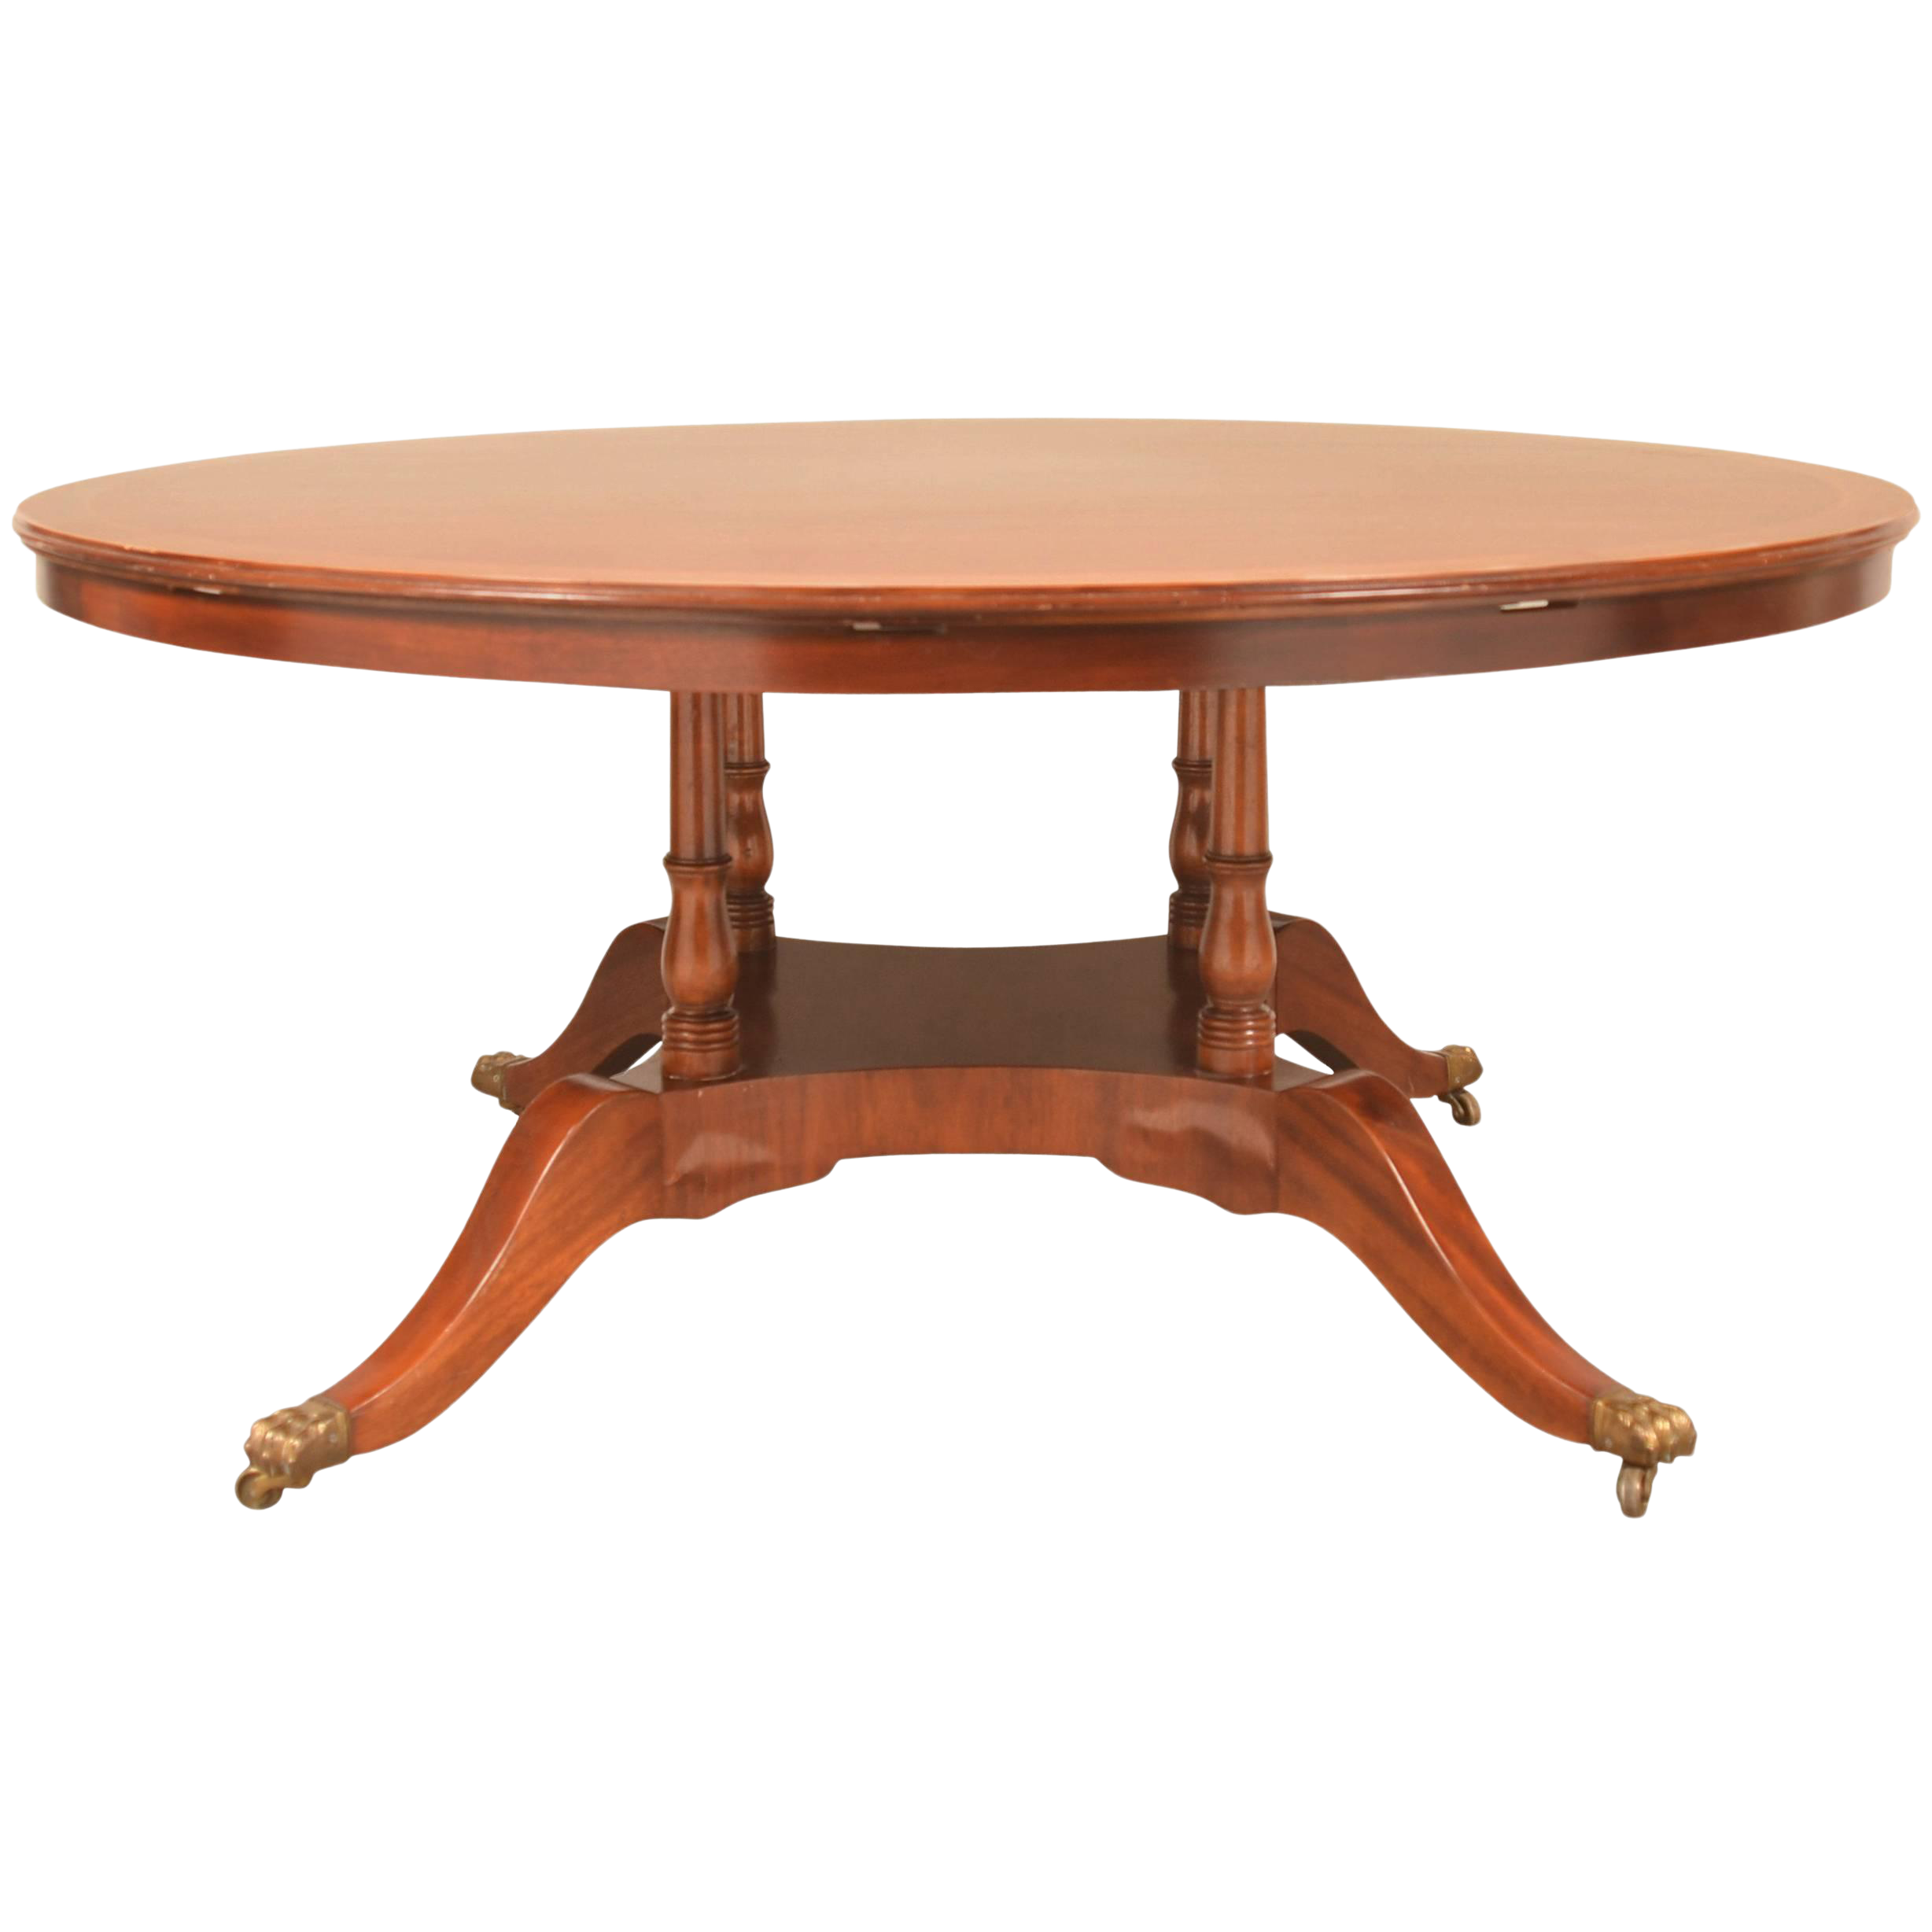 Regency Style Expanding Round Dining Table Chairish